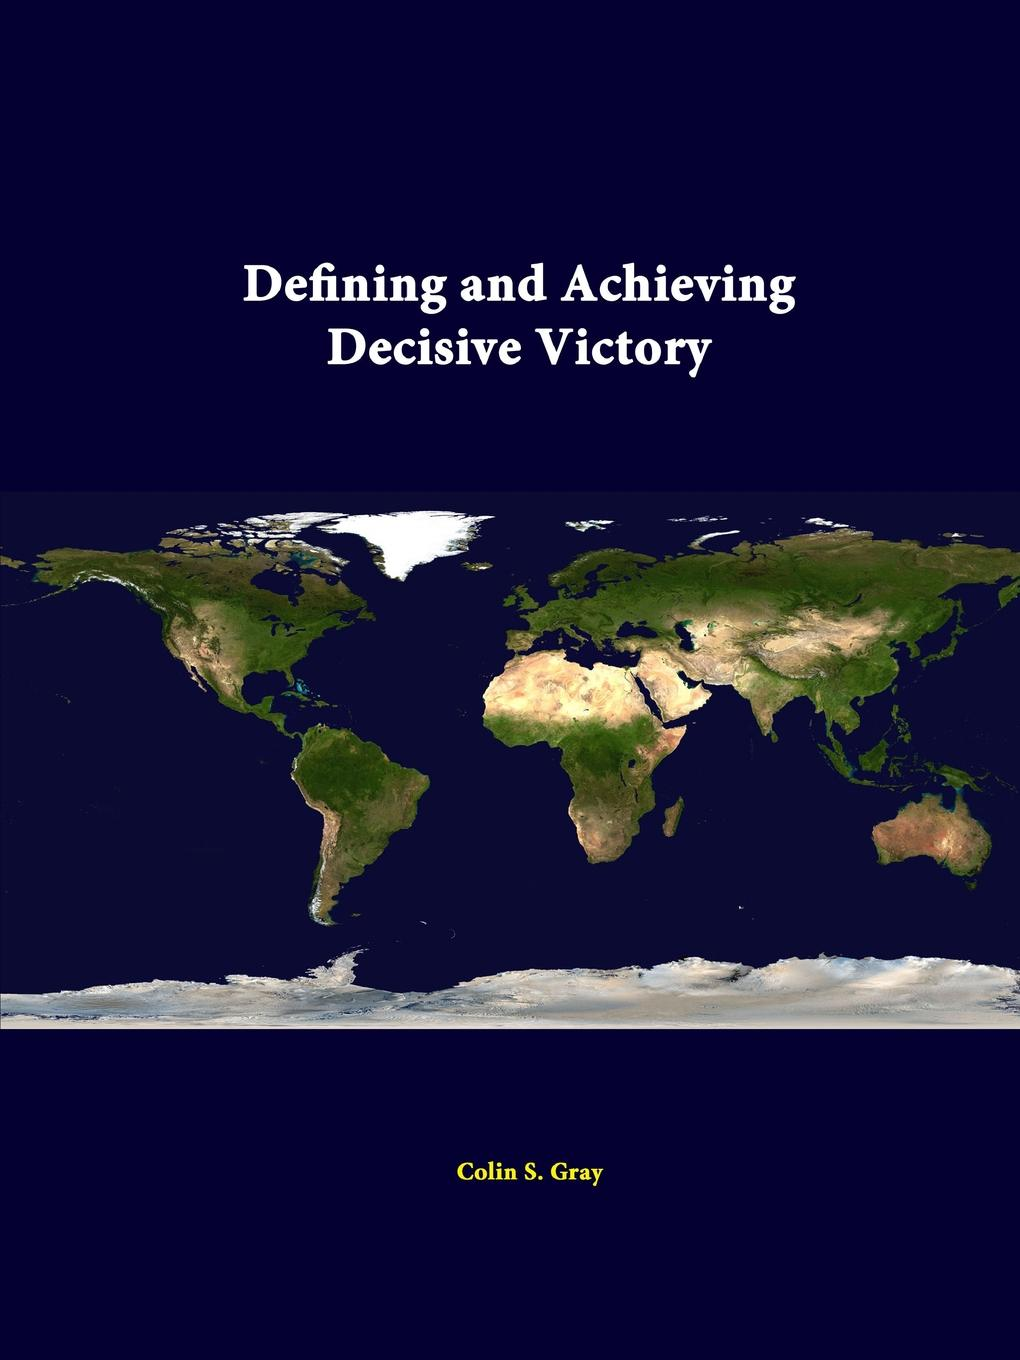 Colin S. Gray, Strategic Studies Institute Defining and Achieving Decisive Victory leonard wong strategic studies institute stifled innovation developing tomorrow